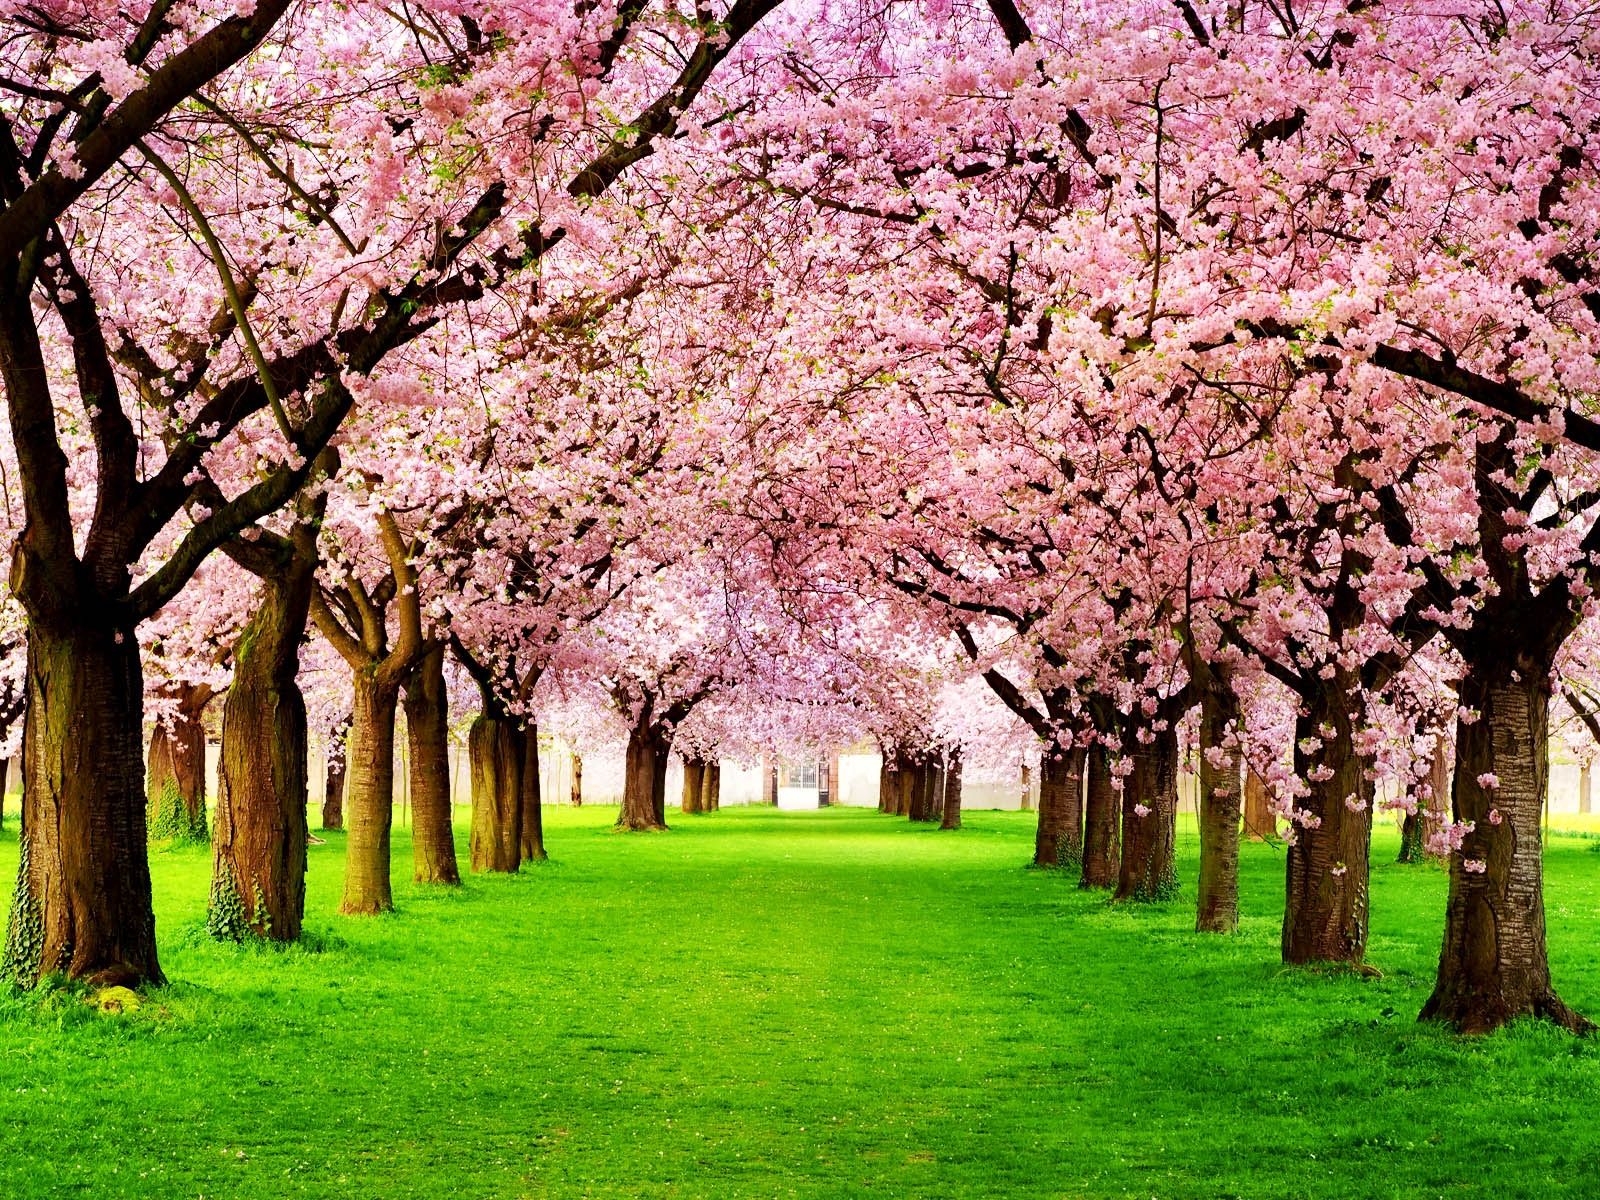 cherry-tree-Tag-Cherry-Tree-Images-Photos-Pictures-and-Backgrounds-wallpaper-wp3604033